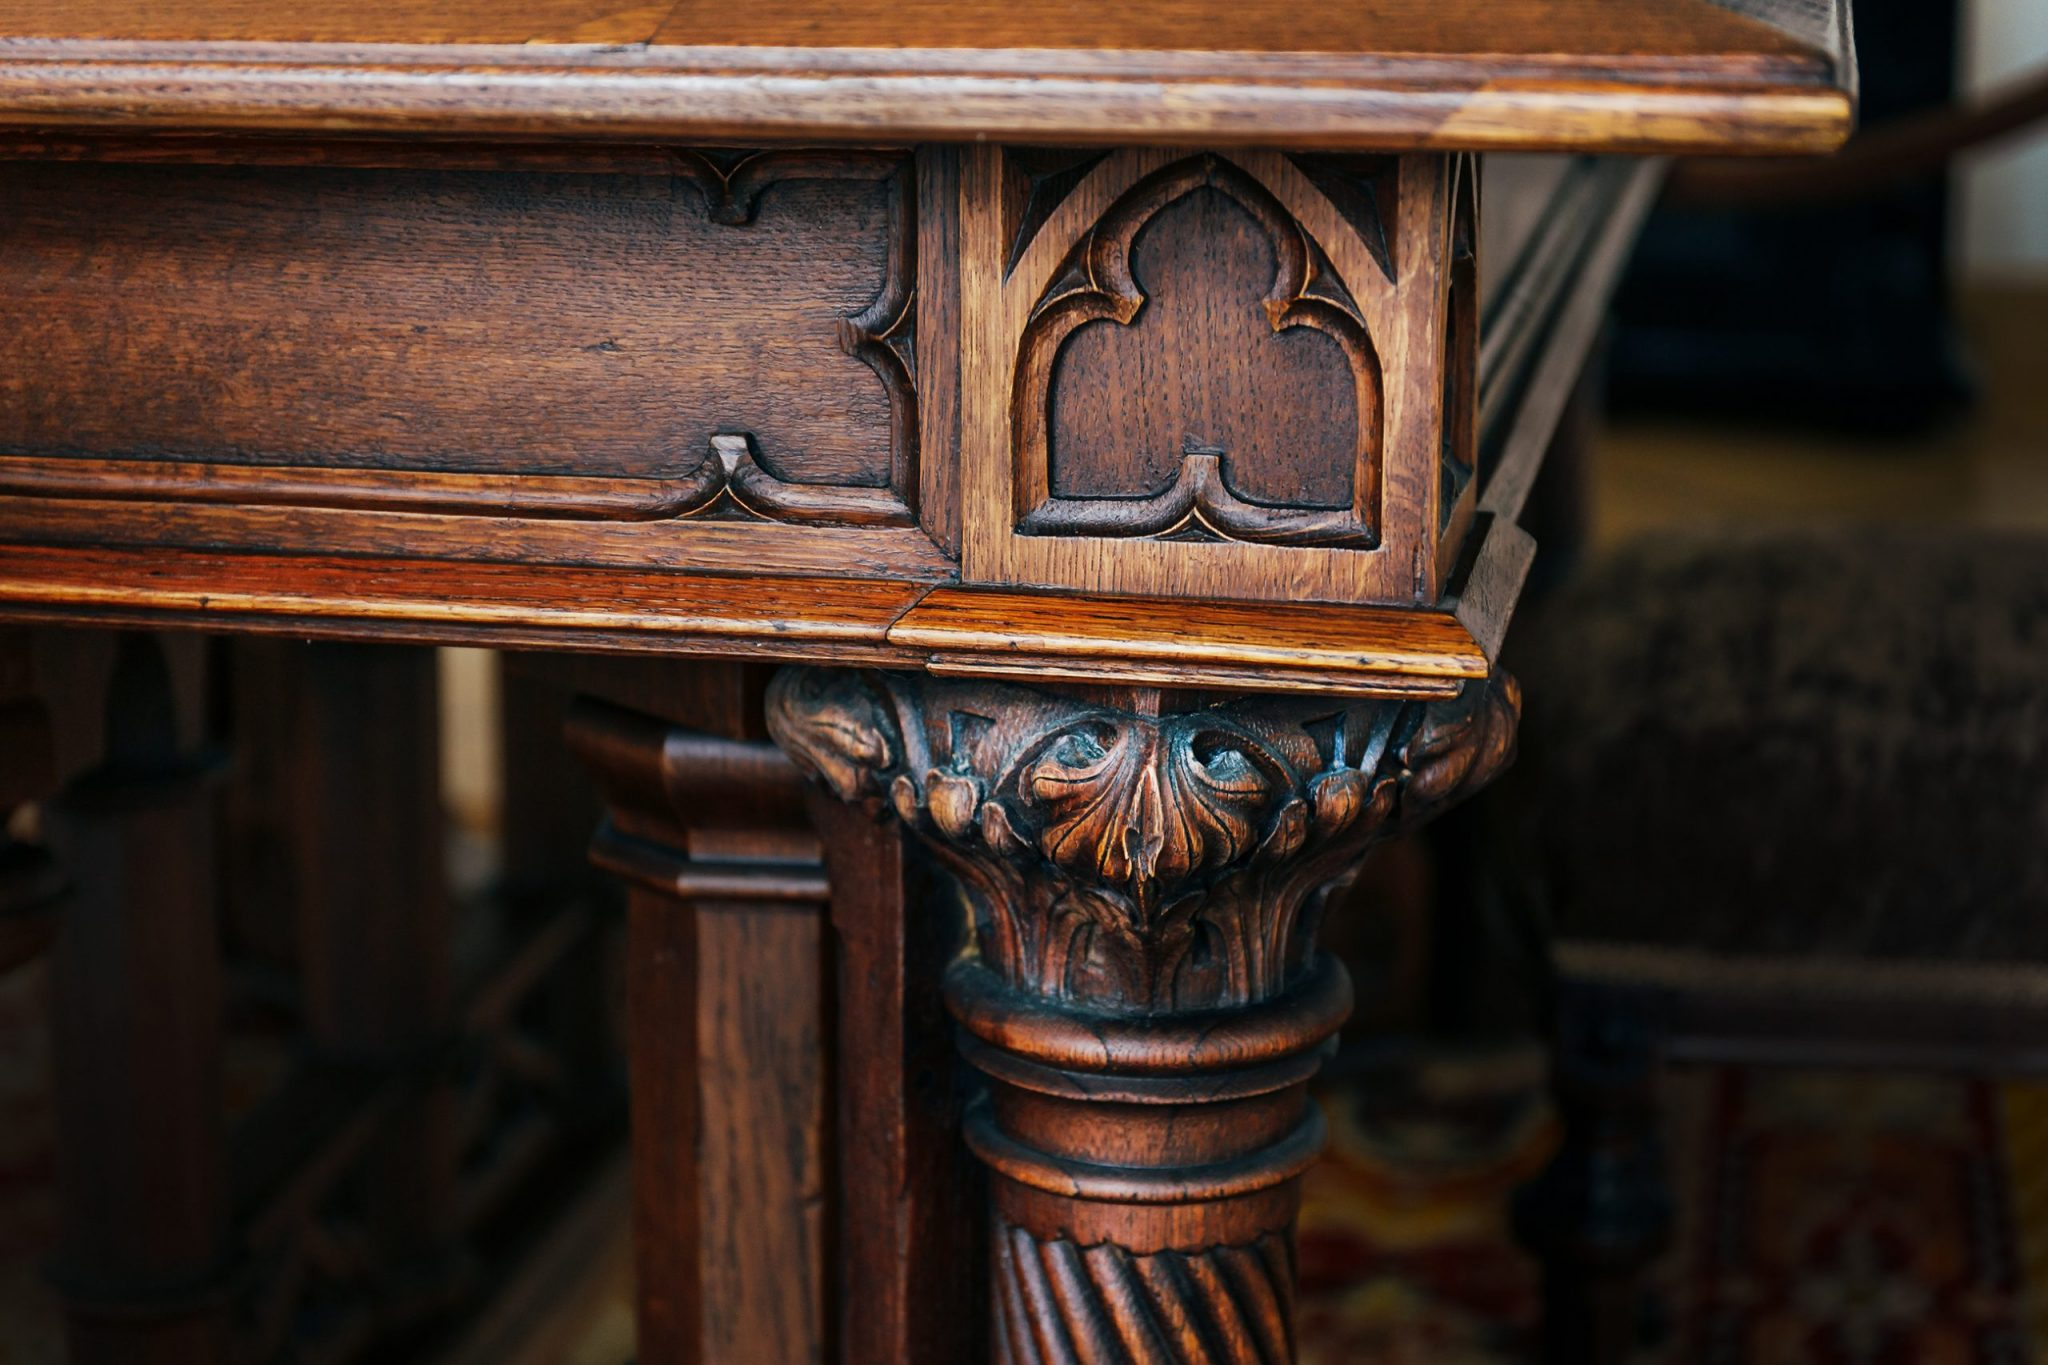 Angle and carved leg of an ancient vintage antique wooden table